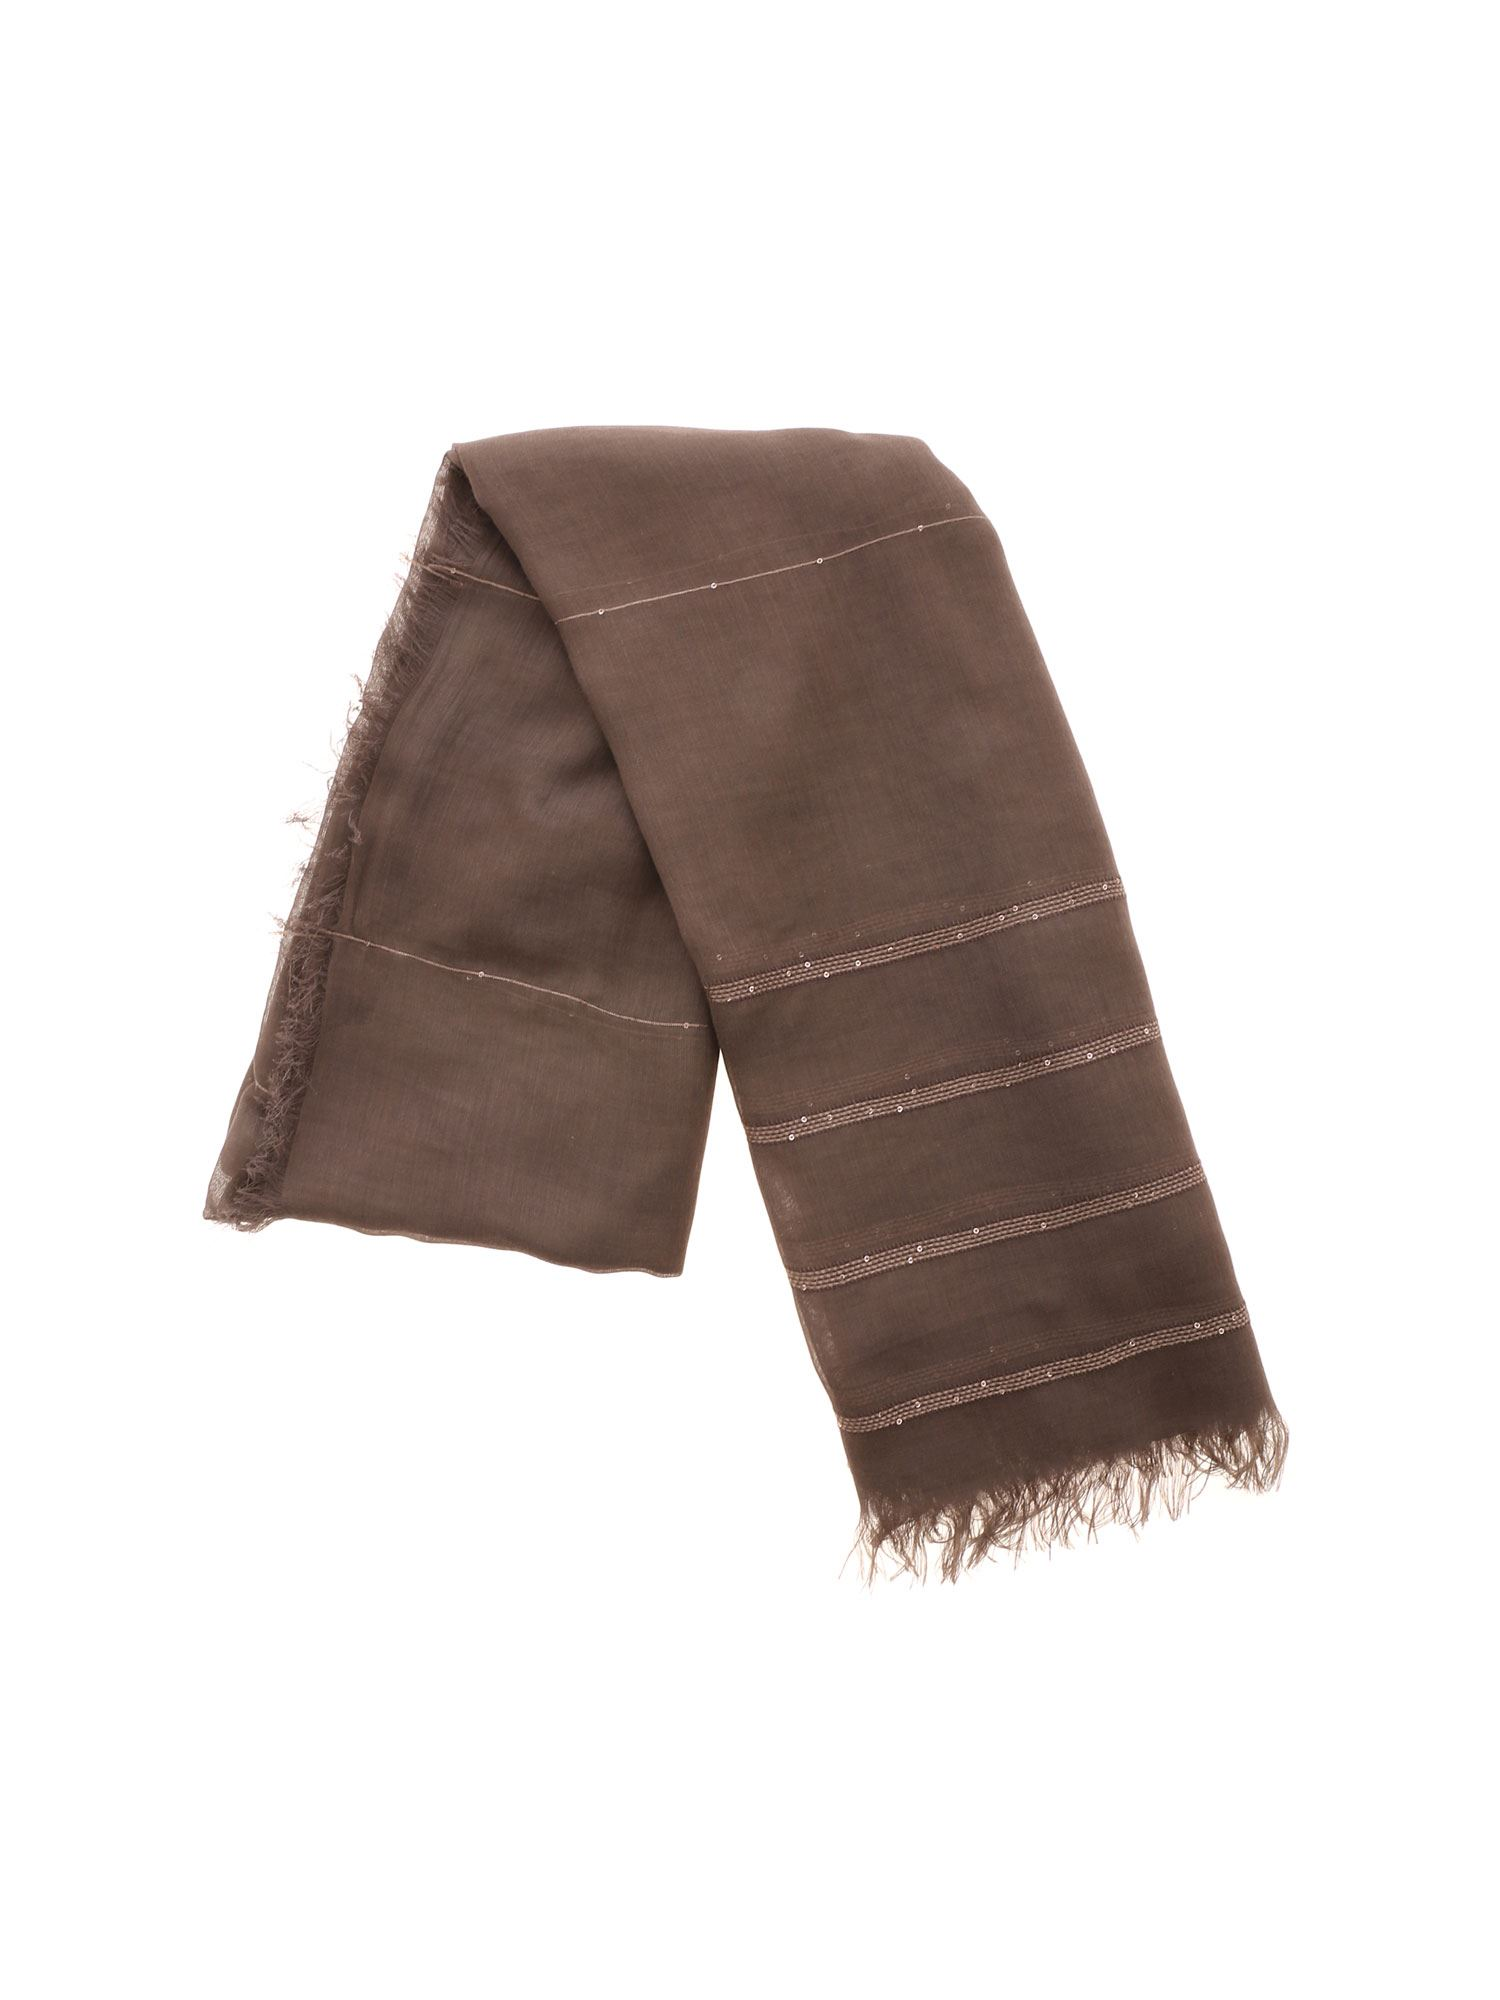 Peserico SEQUINS AND LAMÉ DETAILS SCARF IN BROWN